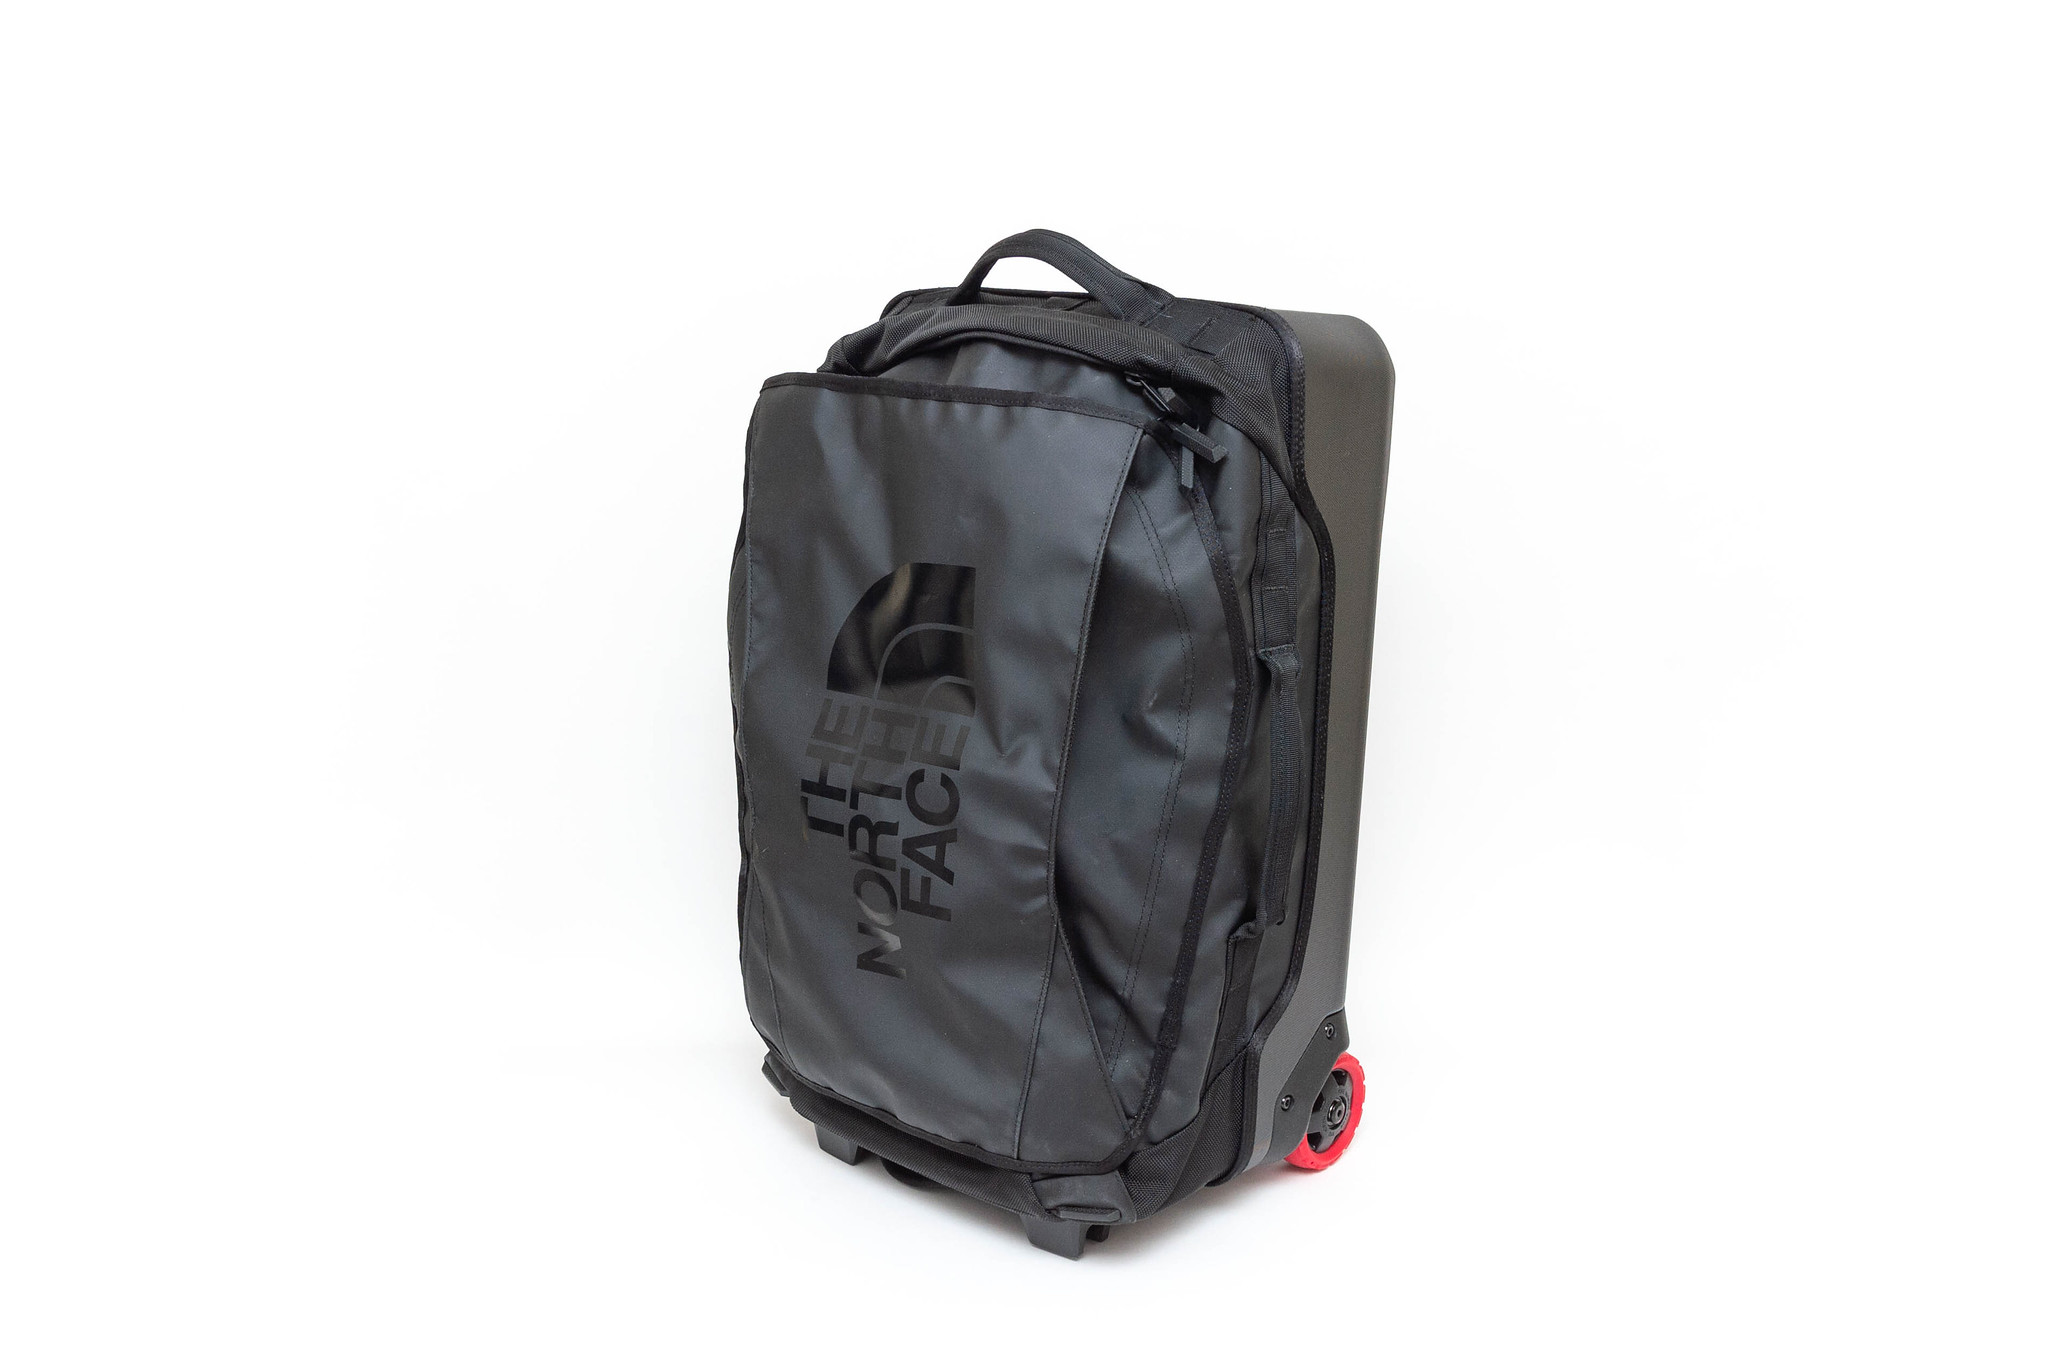 Rolling Thunder 22 / The North Face